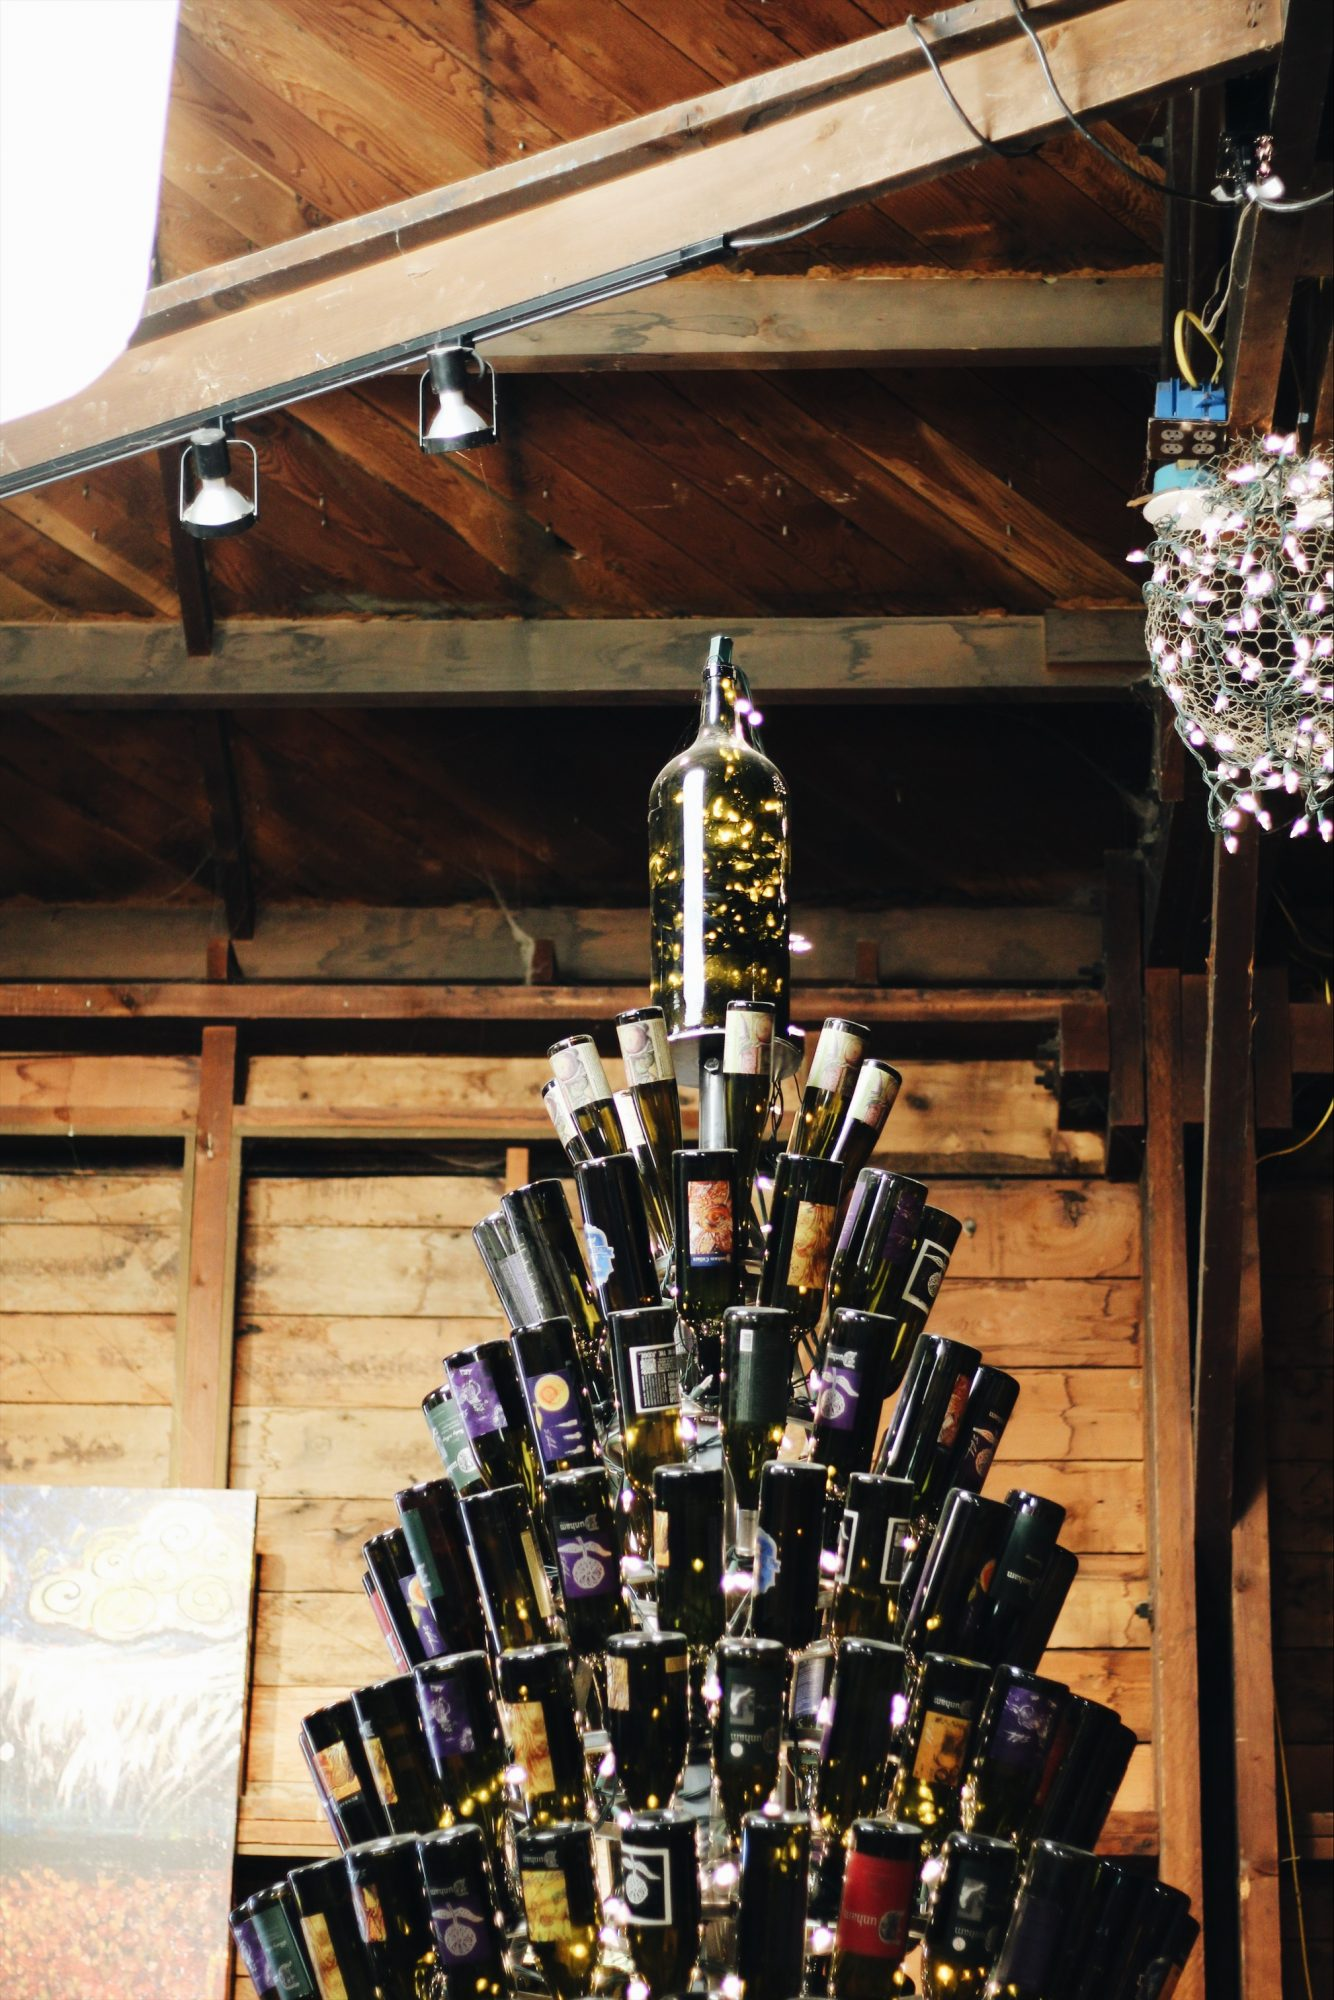 A wine bottle Christmas tree in Walla Walla